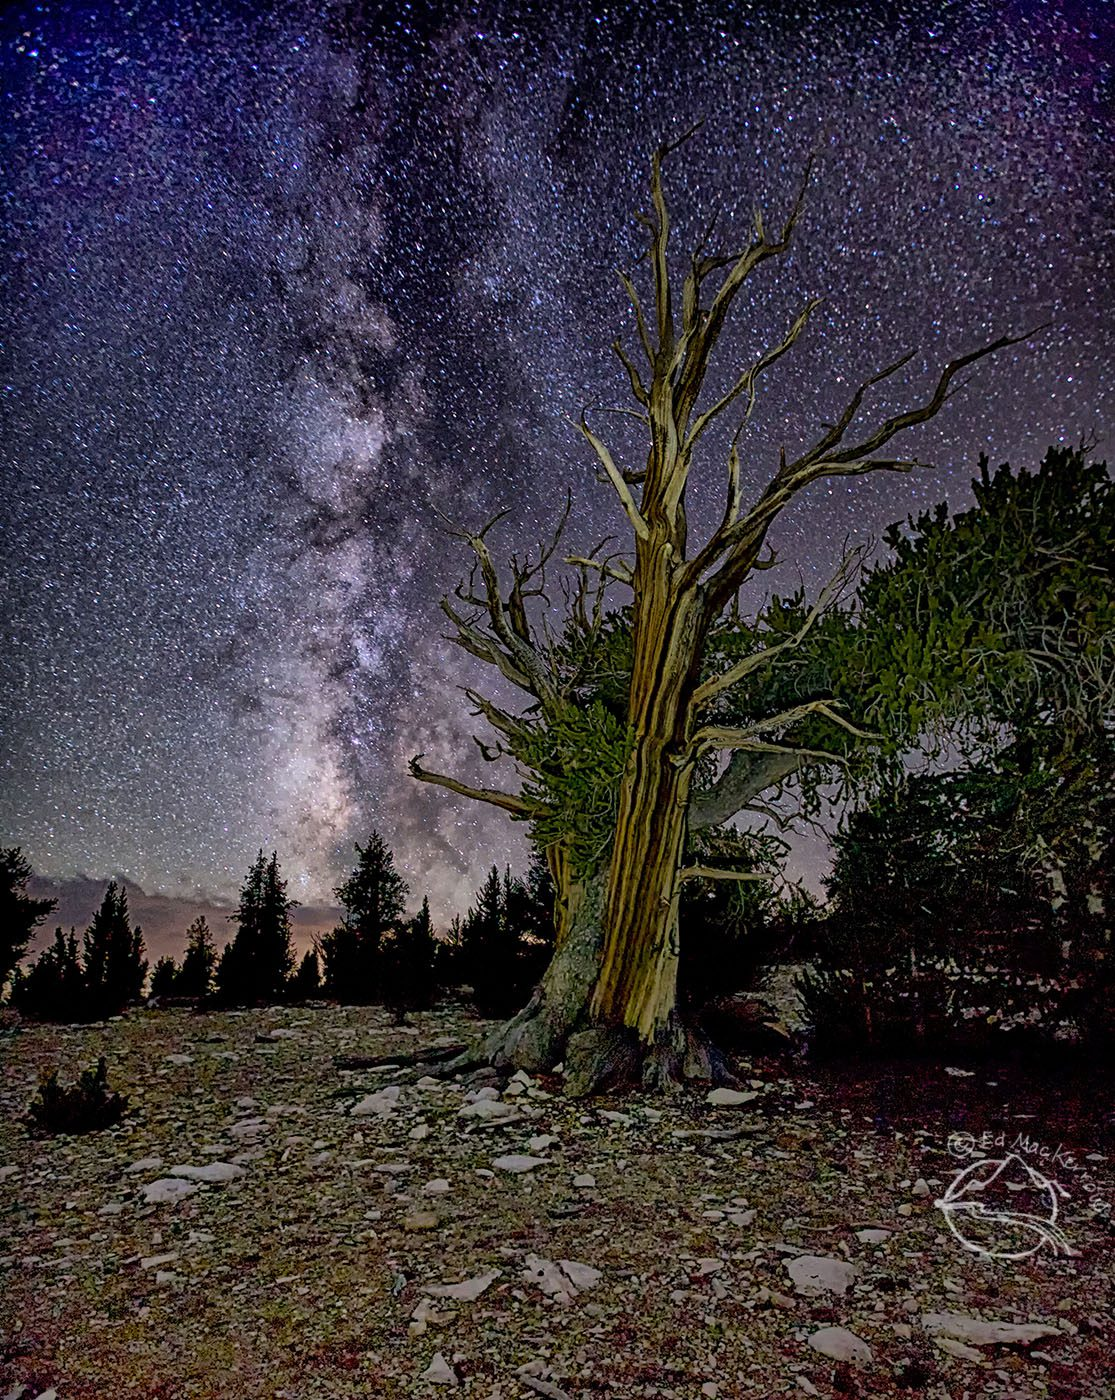 An ancient bristlecone pine experiences another night under the stars in the White Mountains of California.